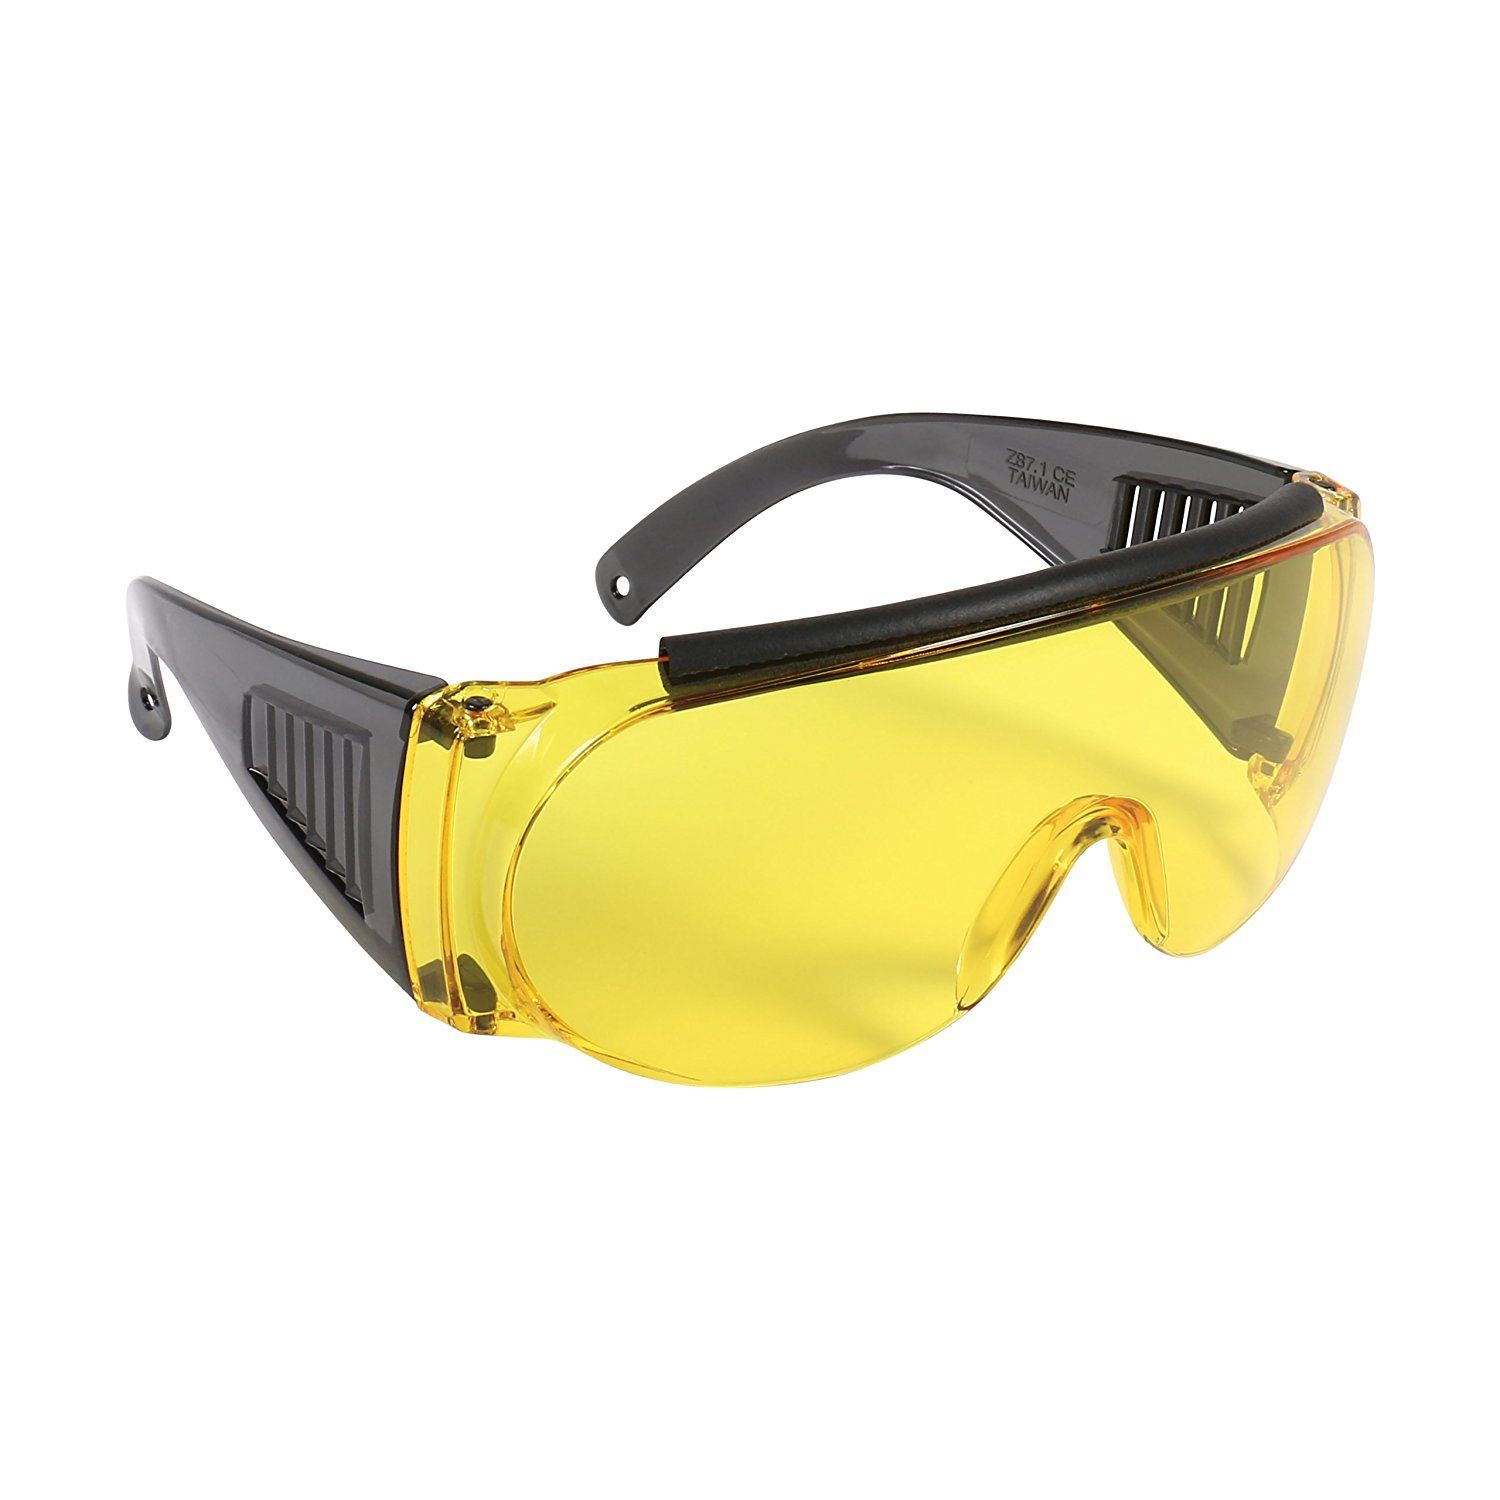 Image result for eye protection construction